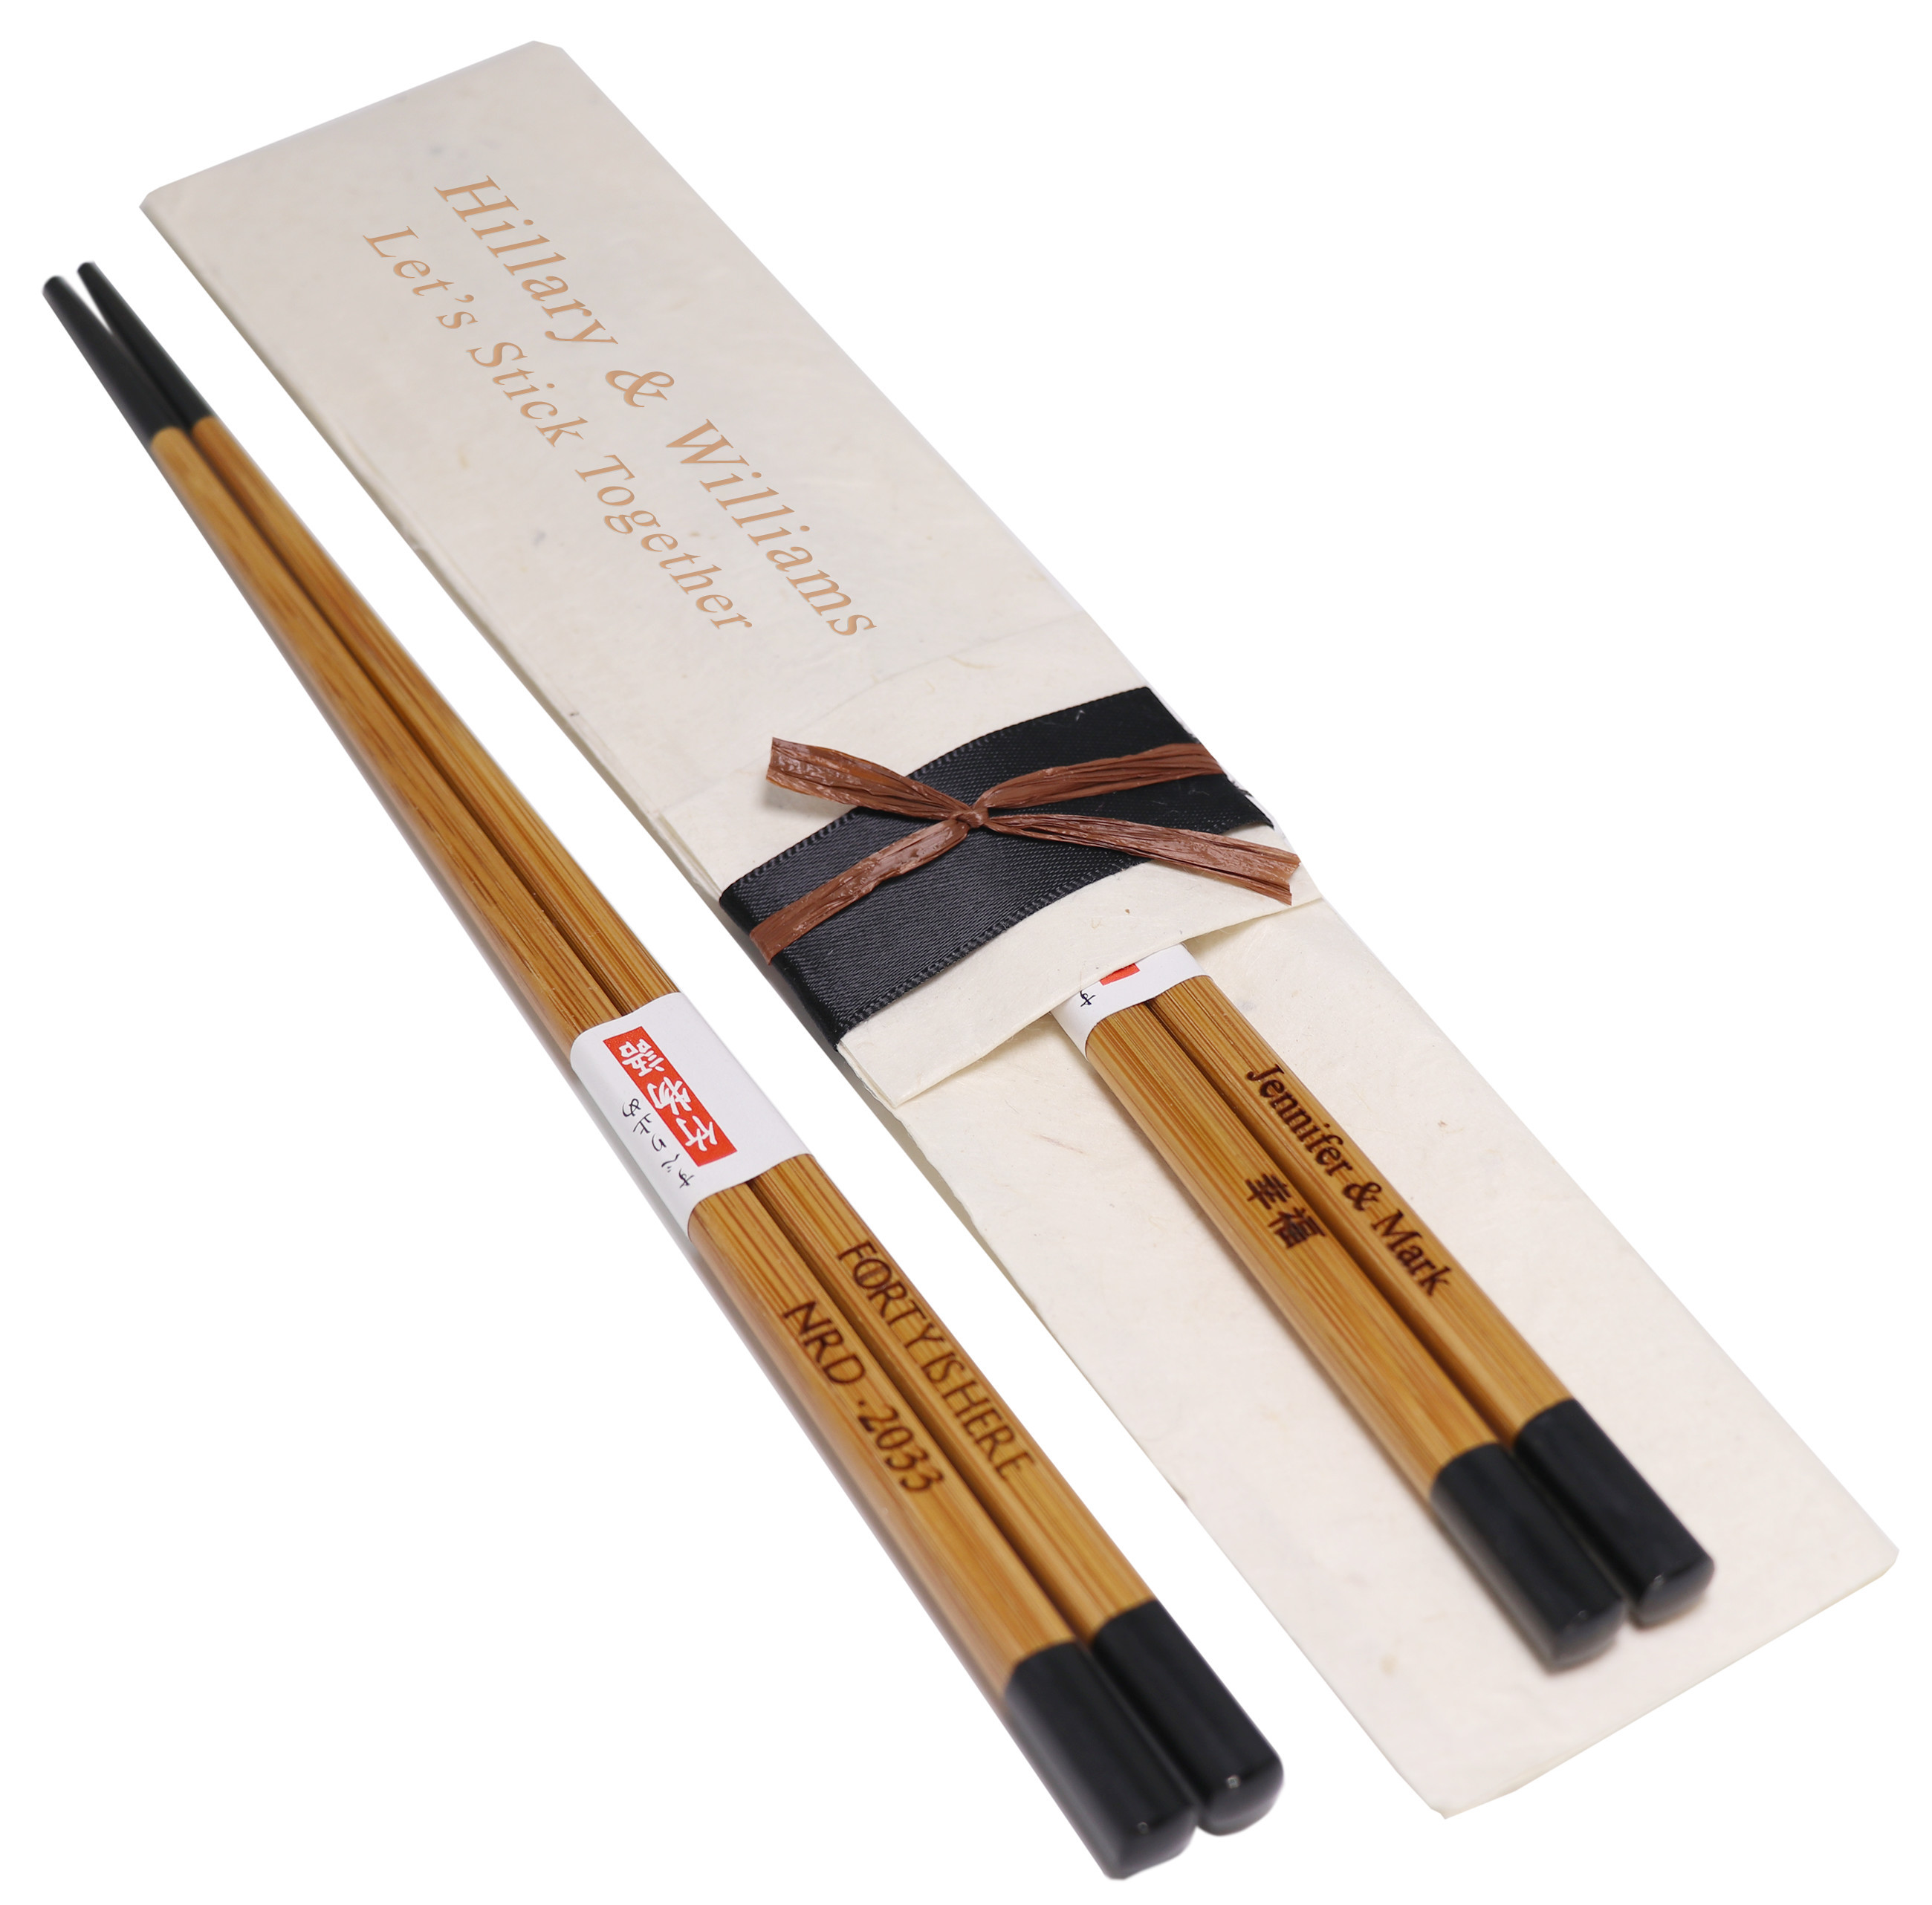 Black Engraved Japanese Bamboo Chopsticks & (Optional) Handmade Natural Lokta Pouch